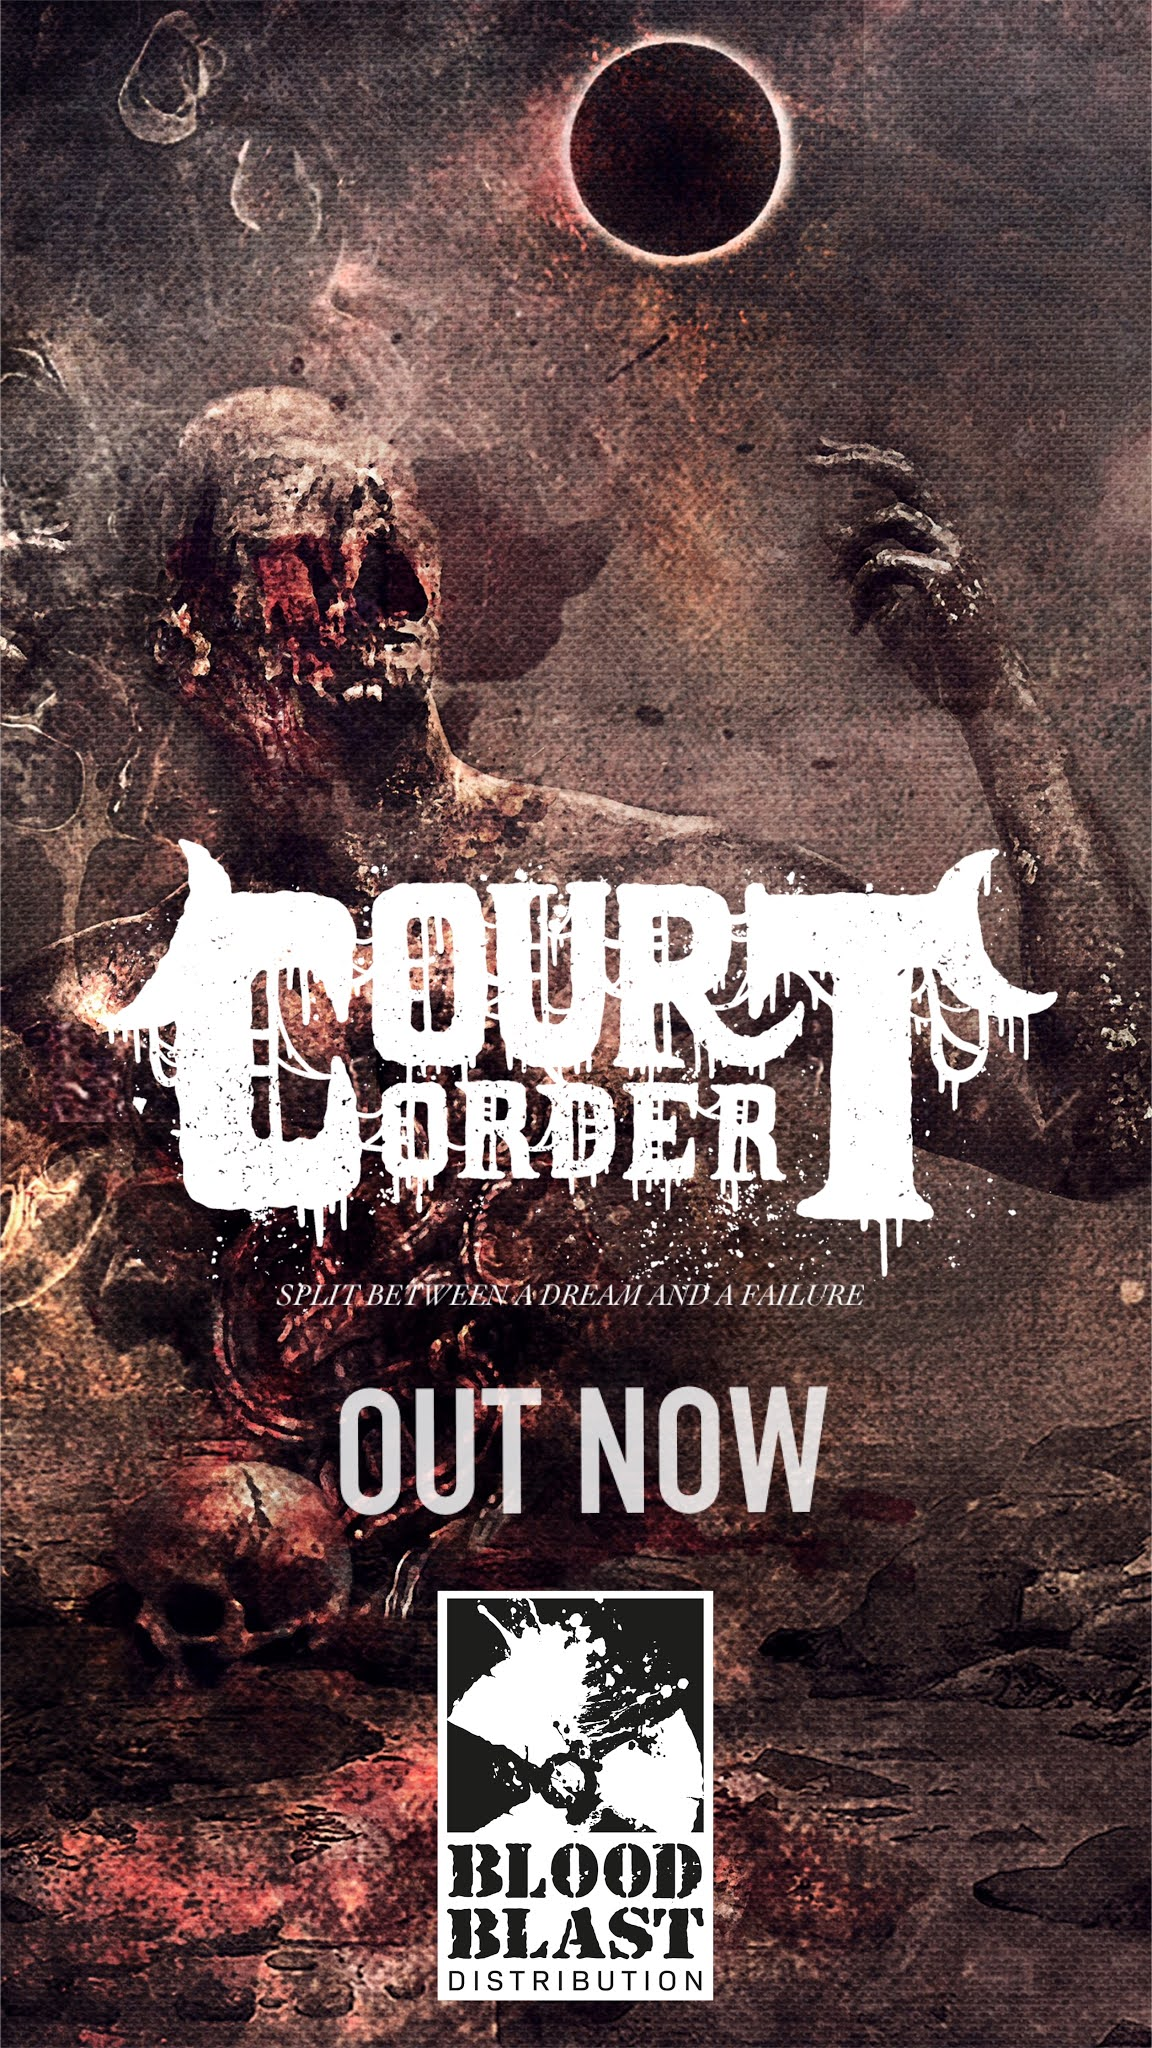 Court Order - Split Between A Dream And A Failure